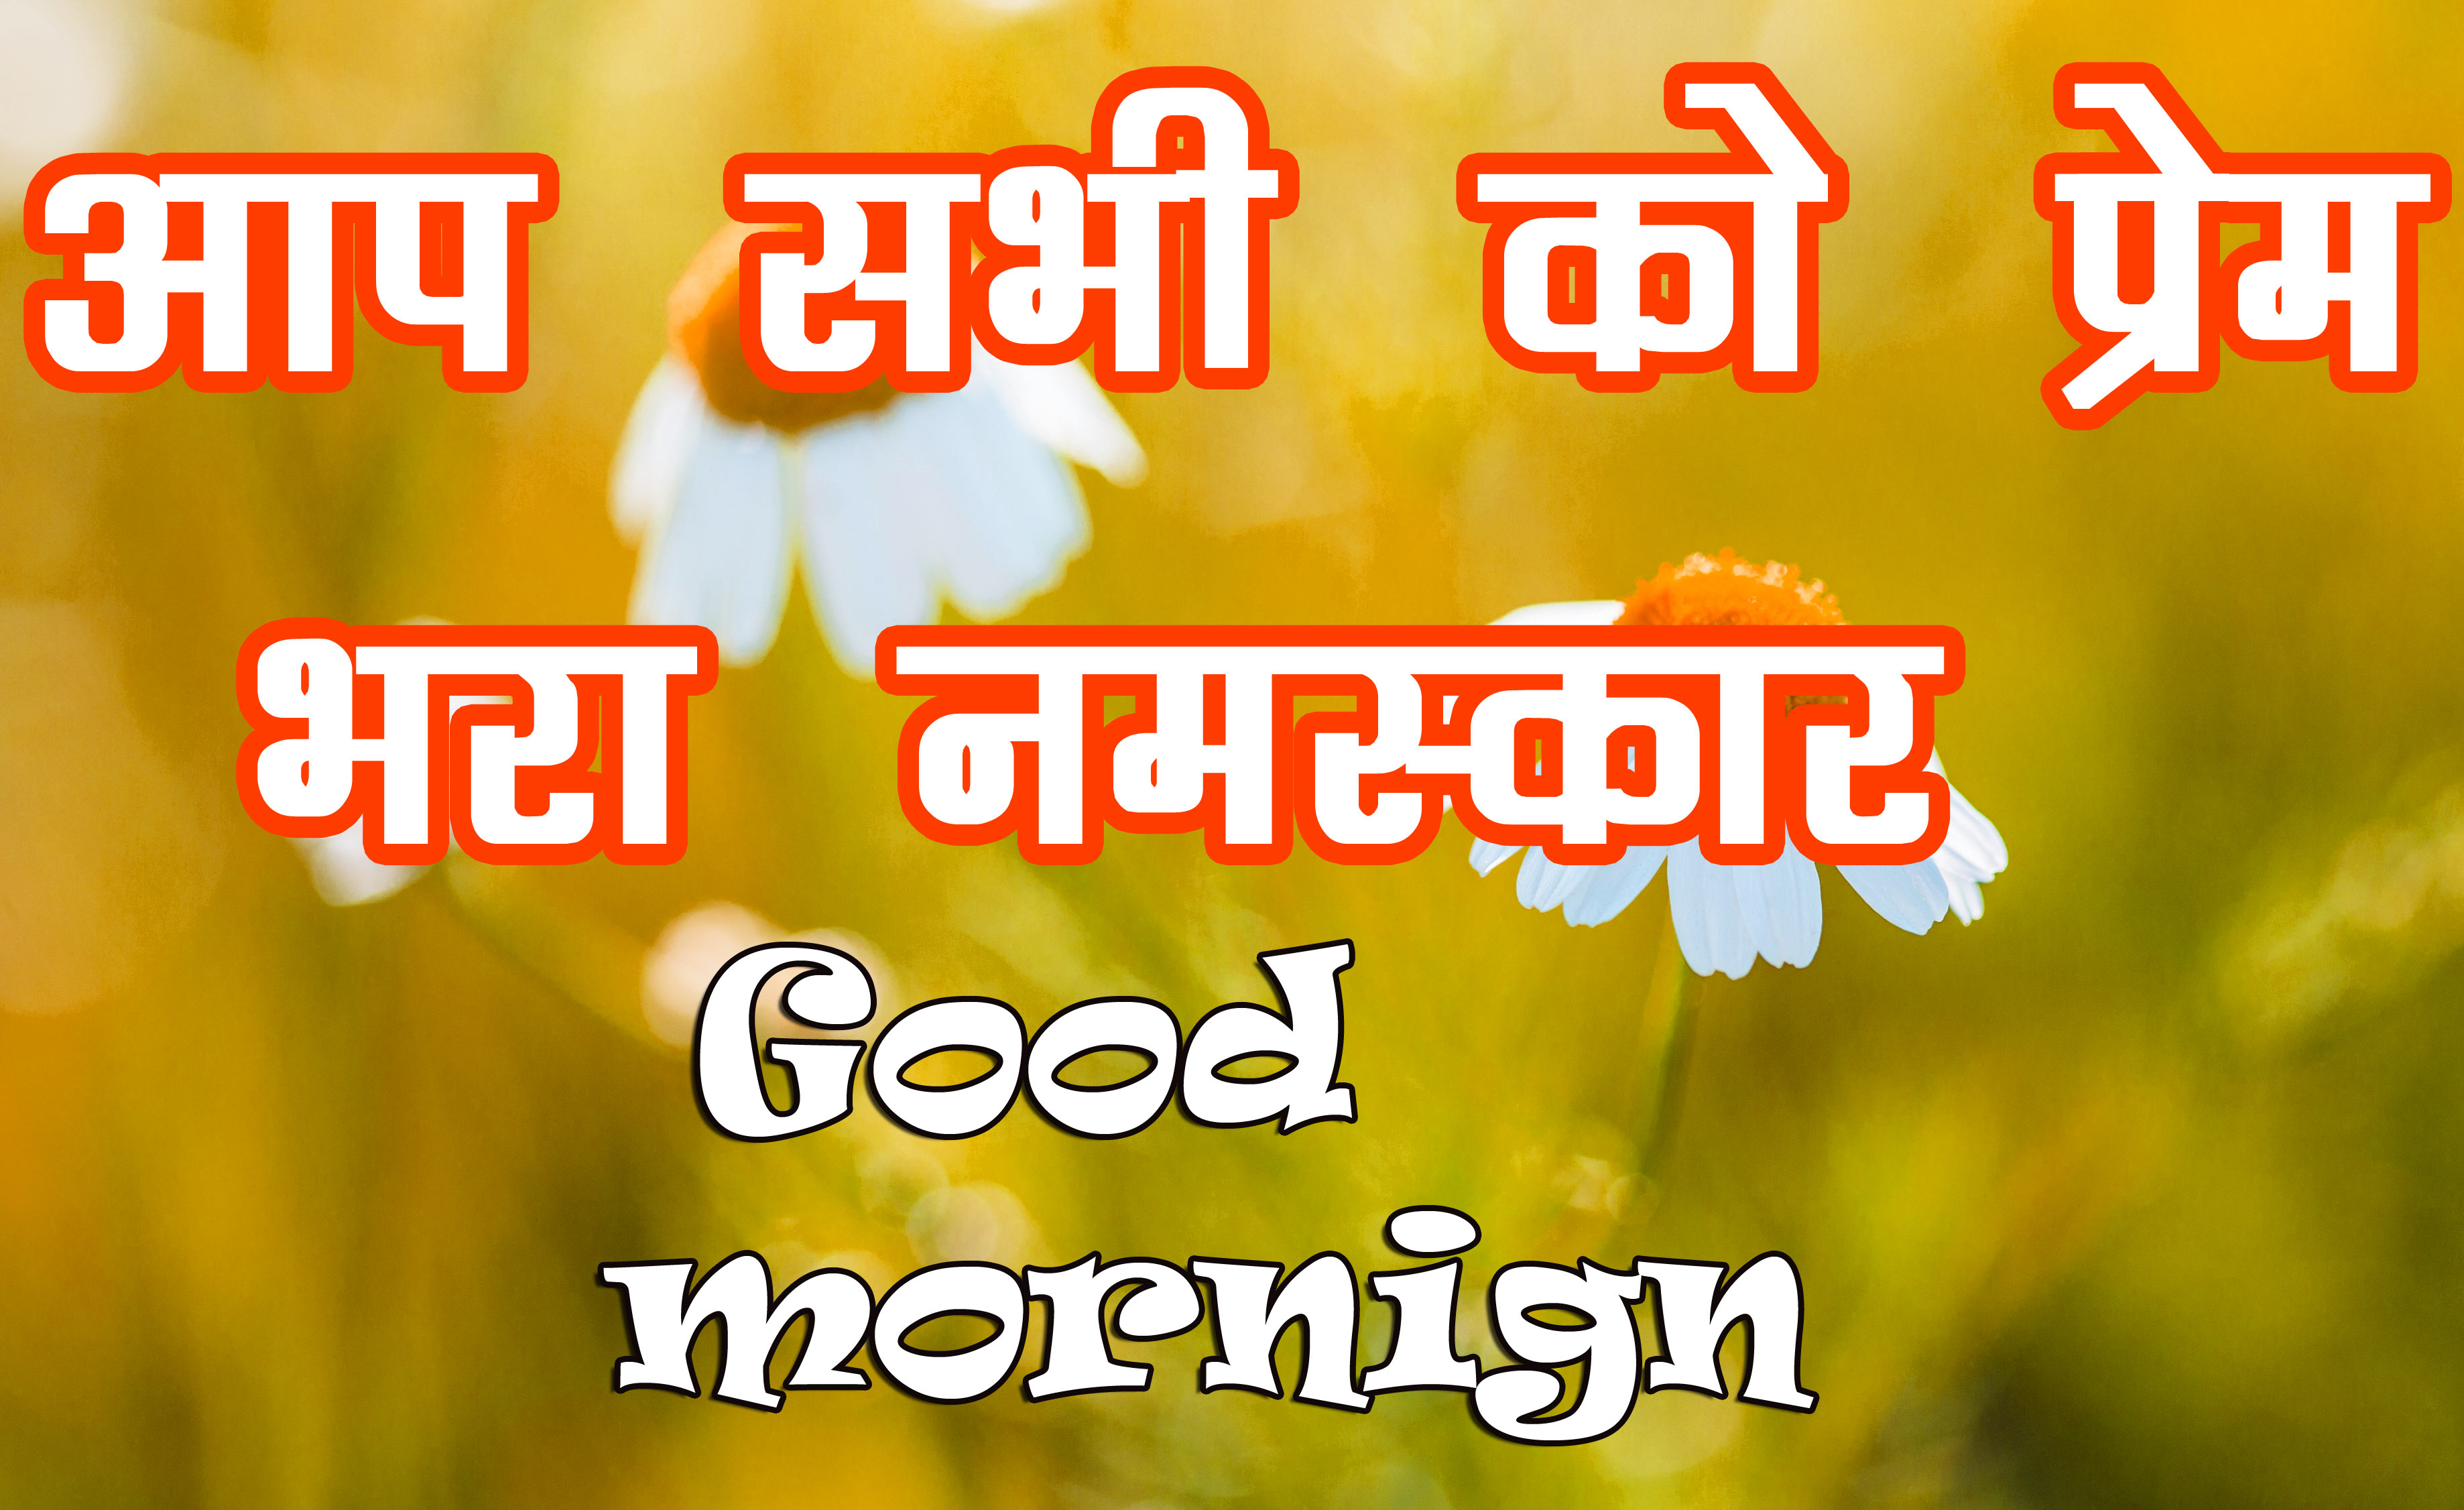 Special Good Morning Images Wallpaper Pics Free